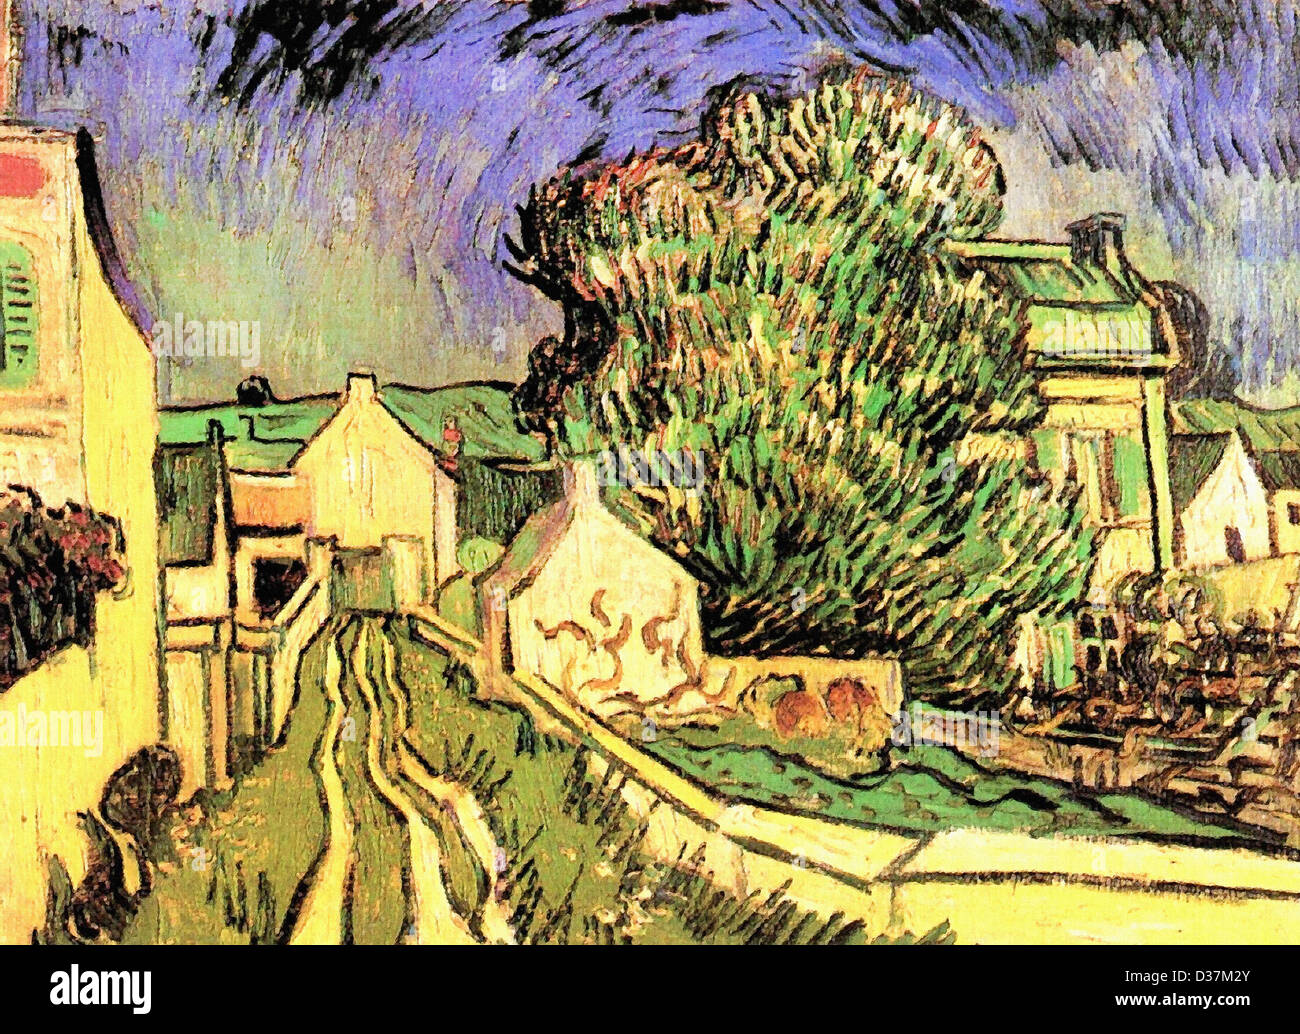 Vincent van Gogh, The House of Pere Pilon. 1890. Post-Impressionism. Oil on canvas. Tate Gallery, London, UK. - Stock Image